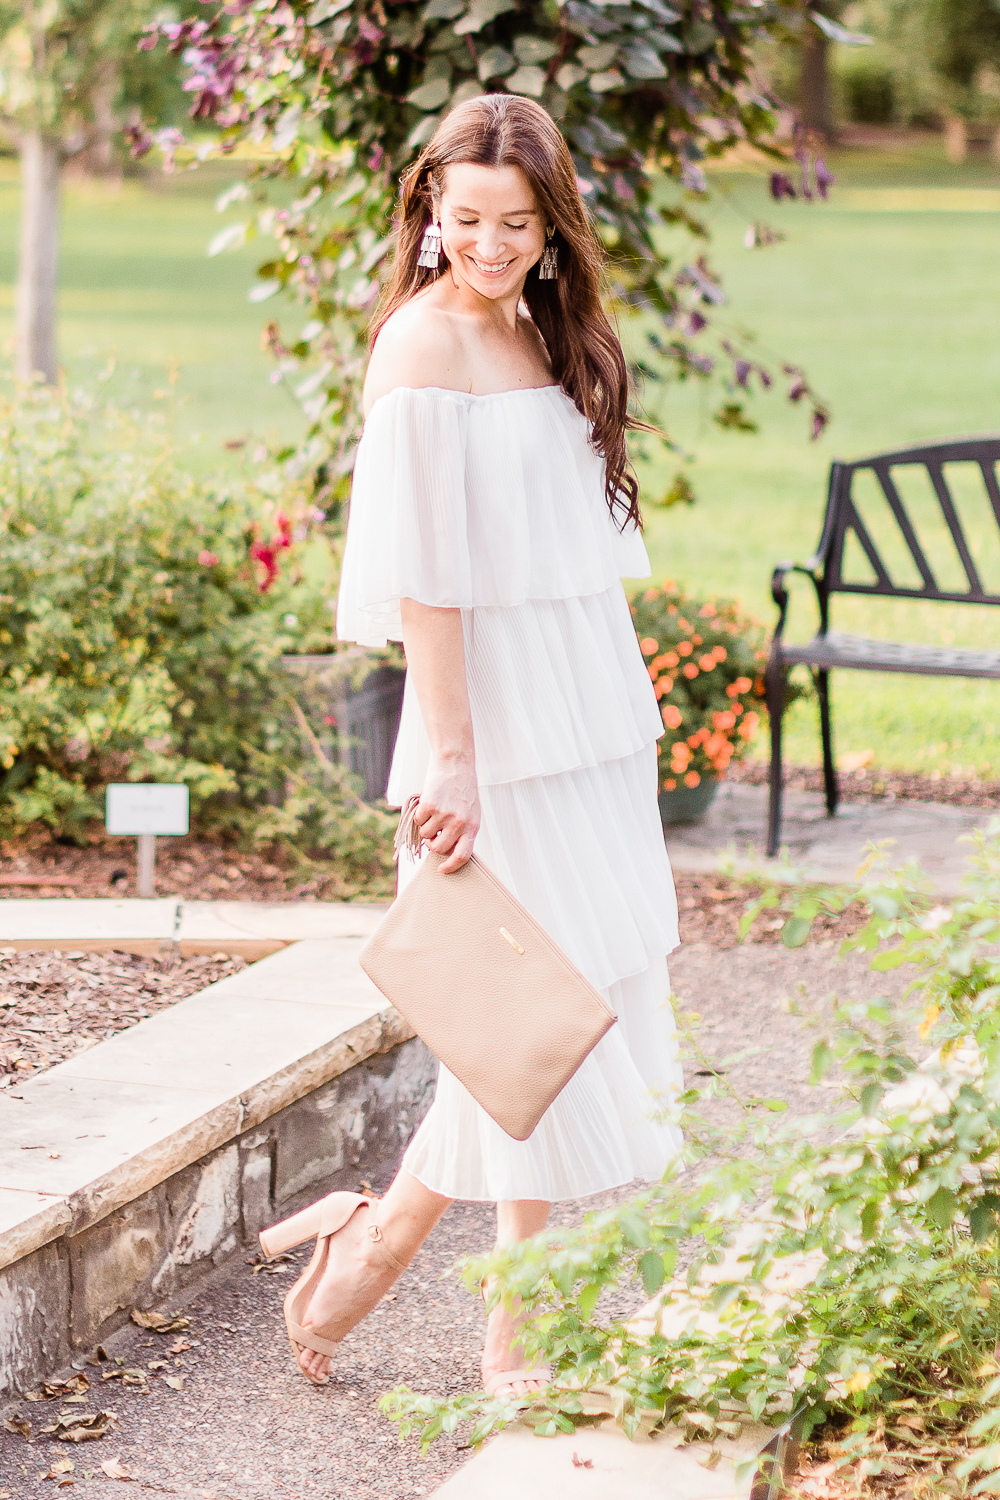 Budget-Friendly Bridal Shower Dress for the Bride-to-Be by affordable fashion blogger Stephanie Ziajka on Diary of a Debutante, Amazon ETCYY Off the Shoulder Ruffle Chiffon Dress styled with Amazon Heels Charm nude chunky block sandals, fall LWD outfit